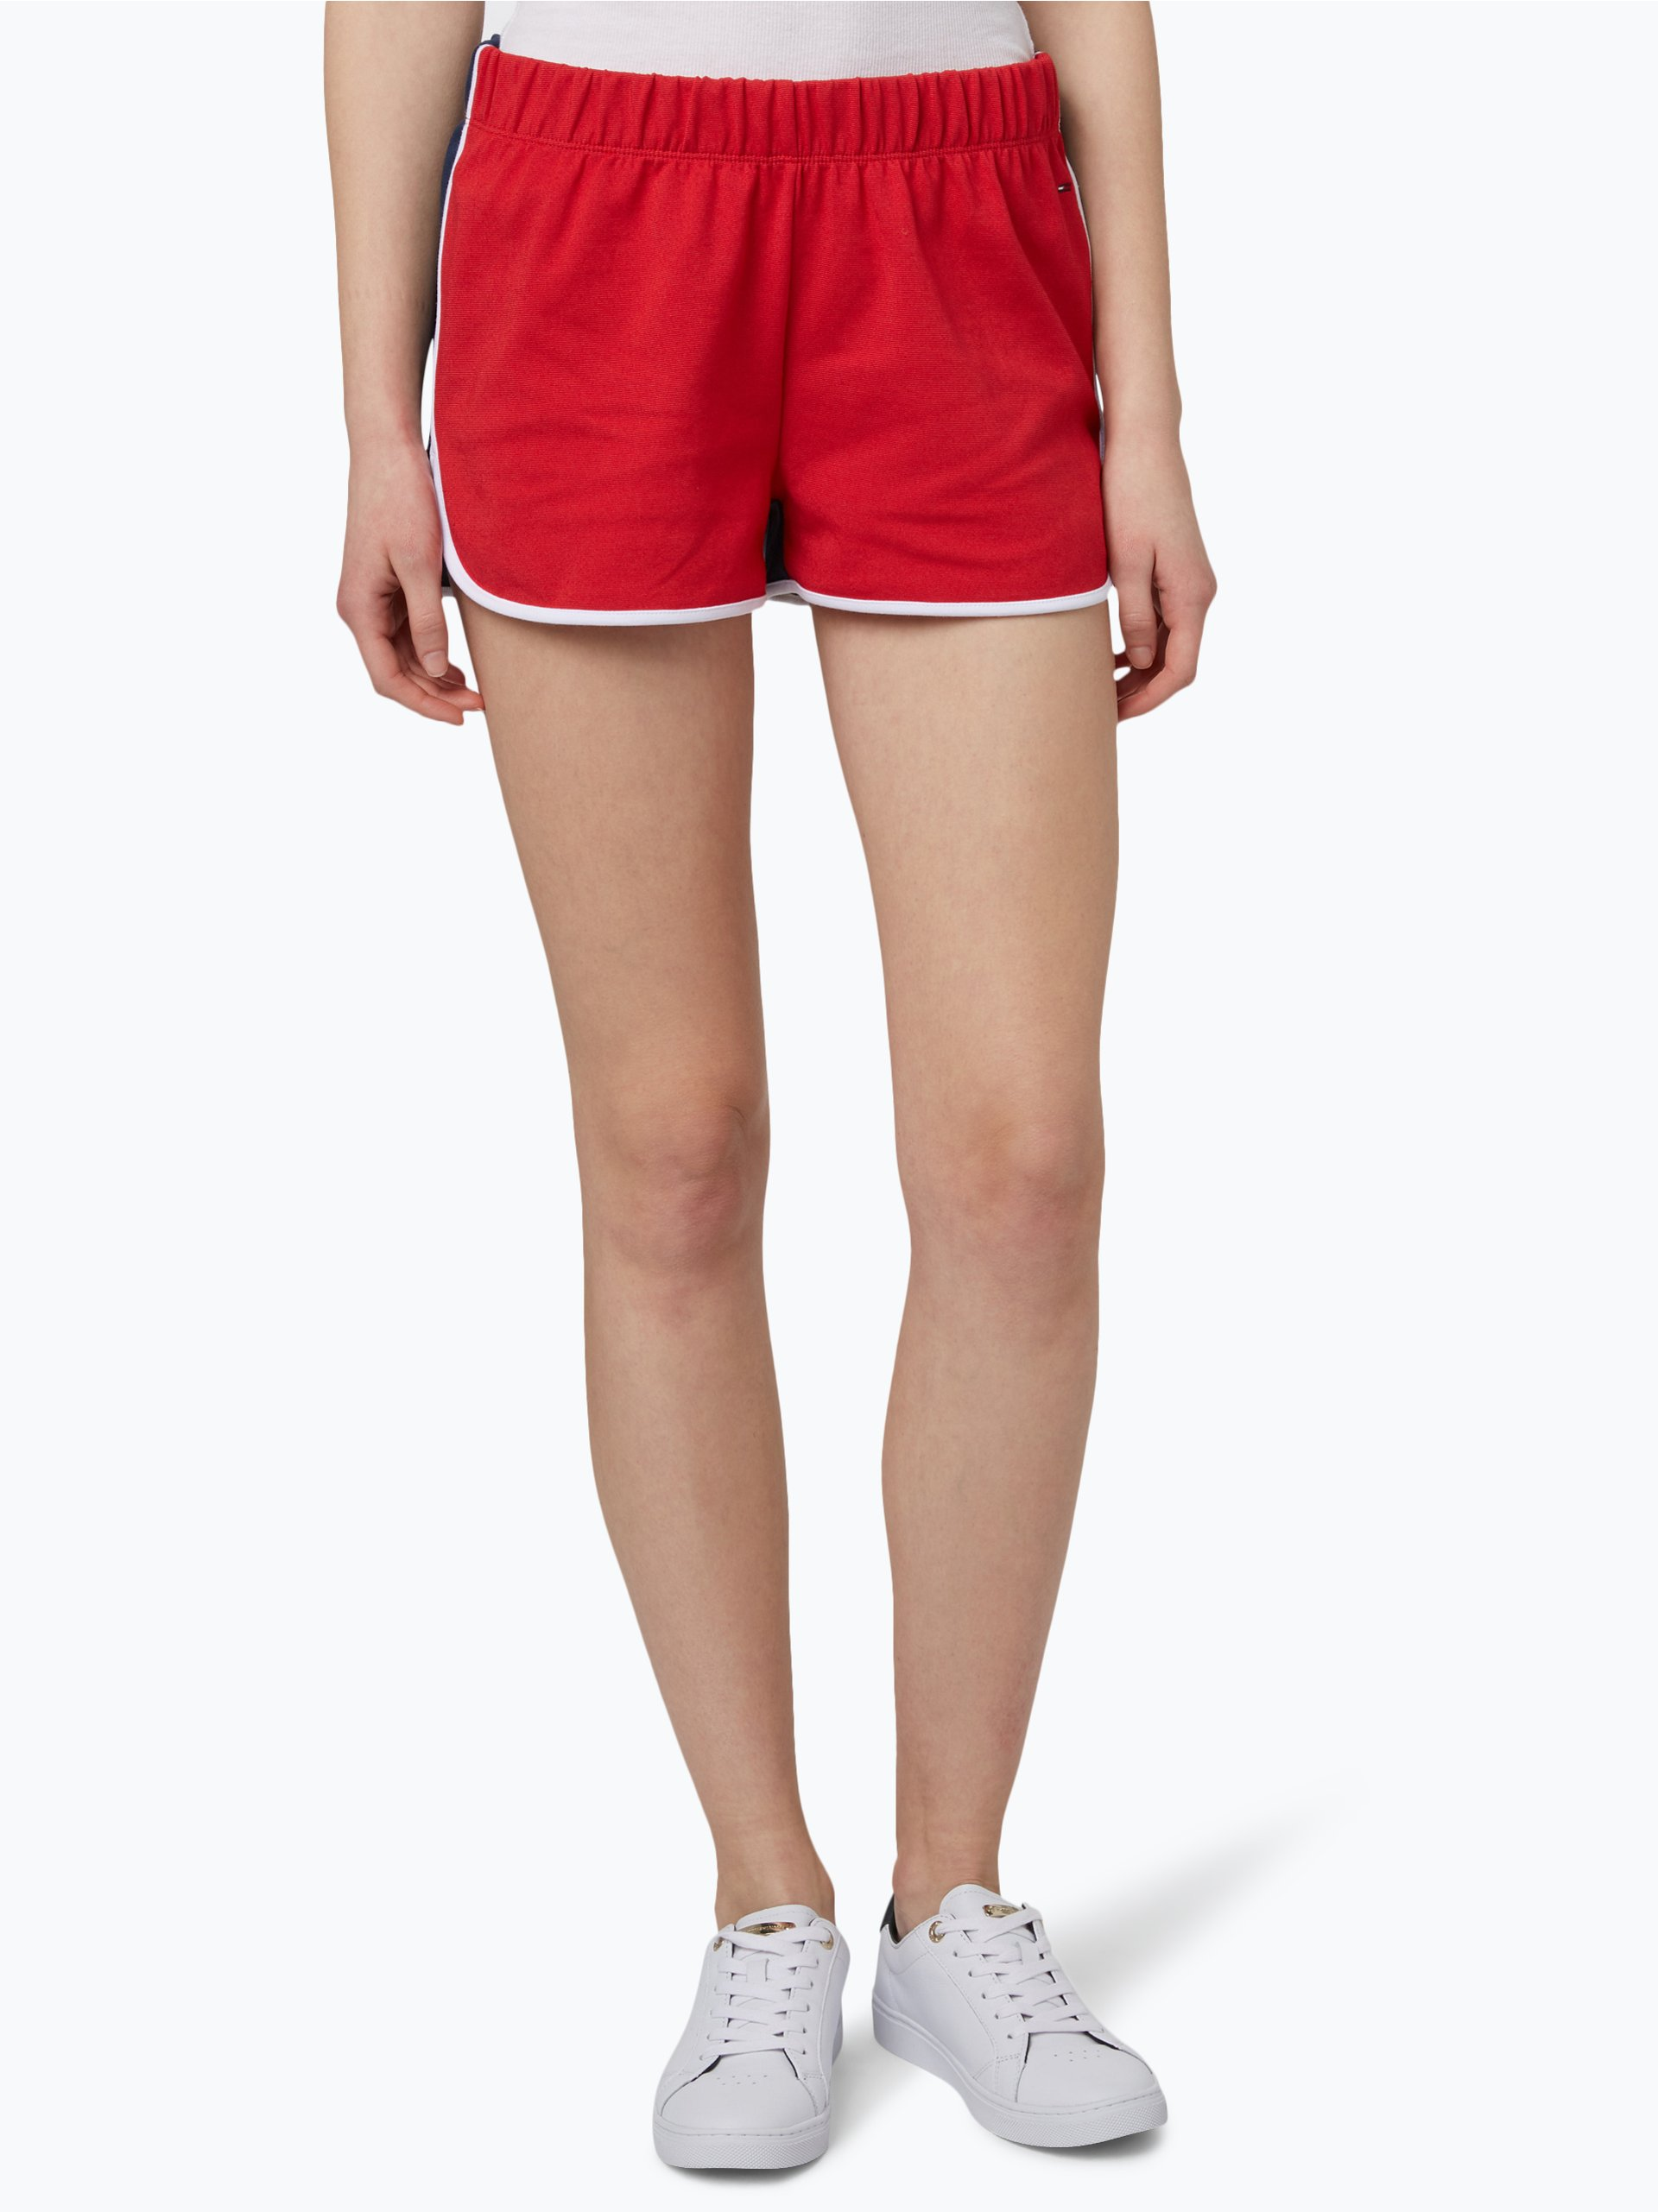 hilfiger denim damen shorts rot uni online kaufen peek. Black Bedroom Furniture Sets. Home Design Ideas